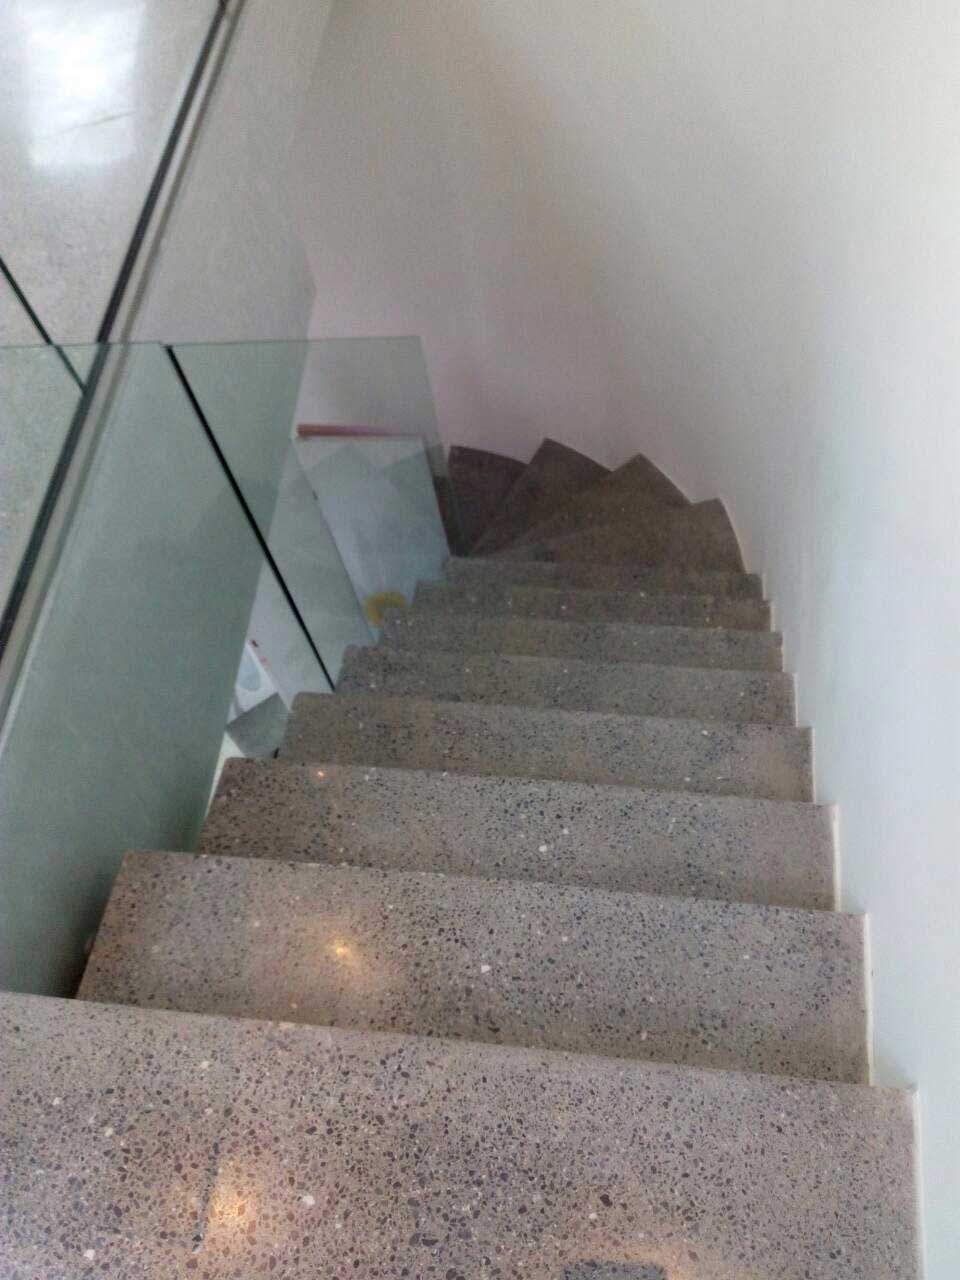 Polishing completed on stairs